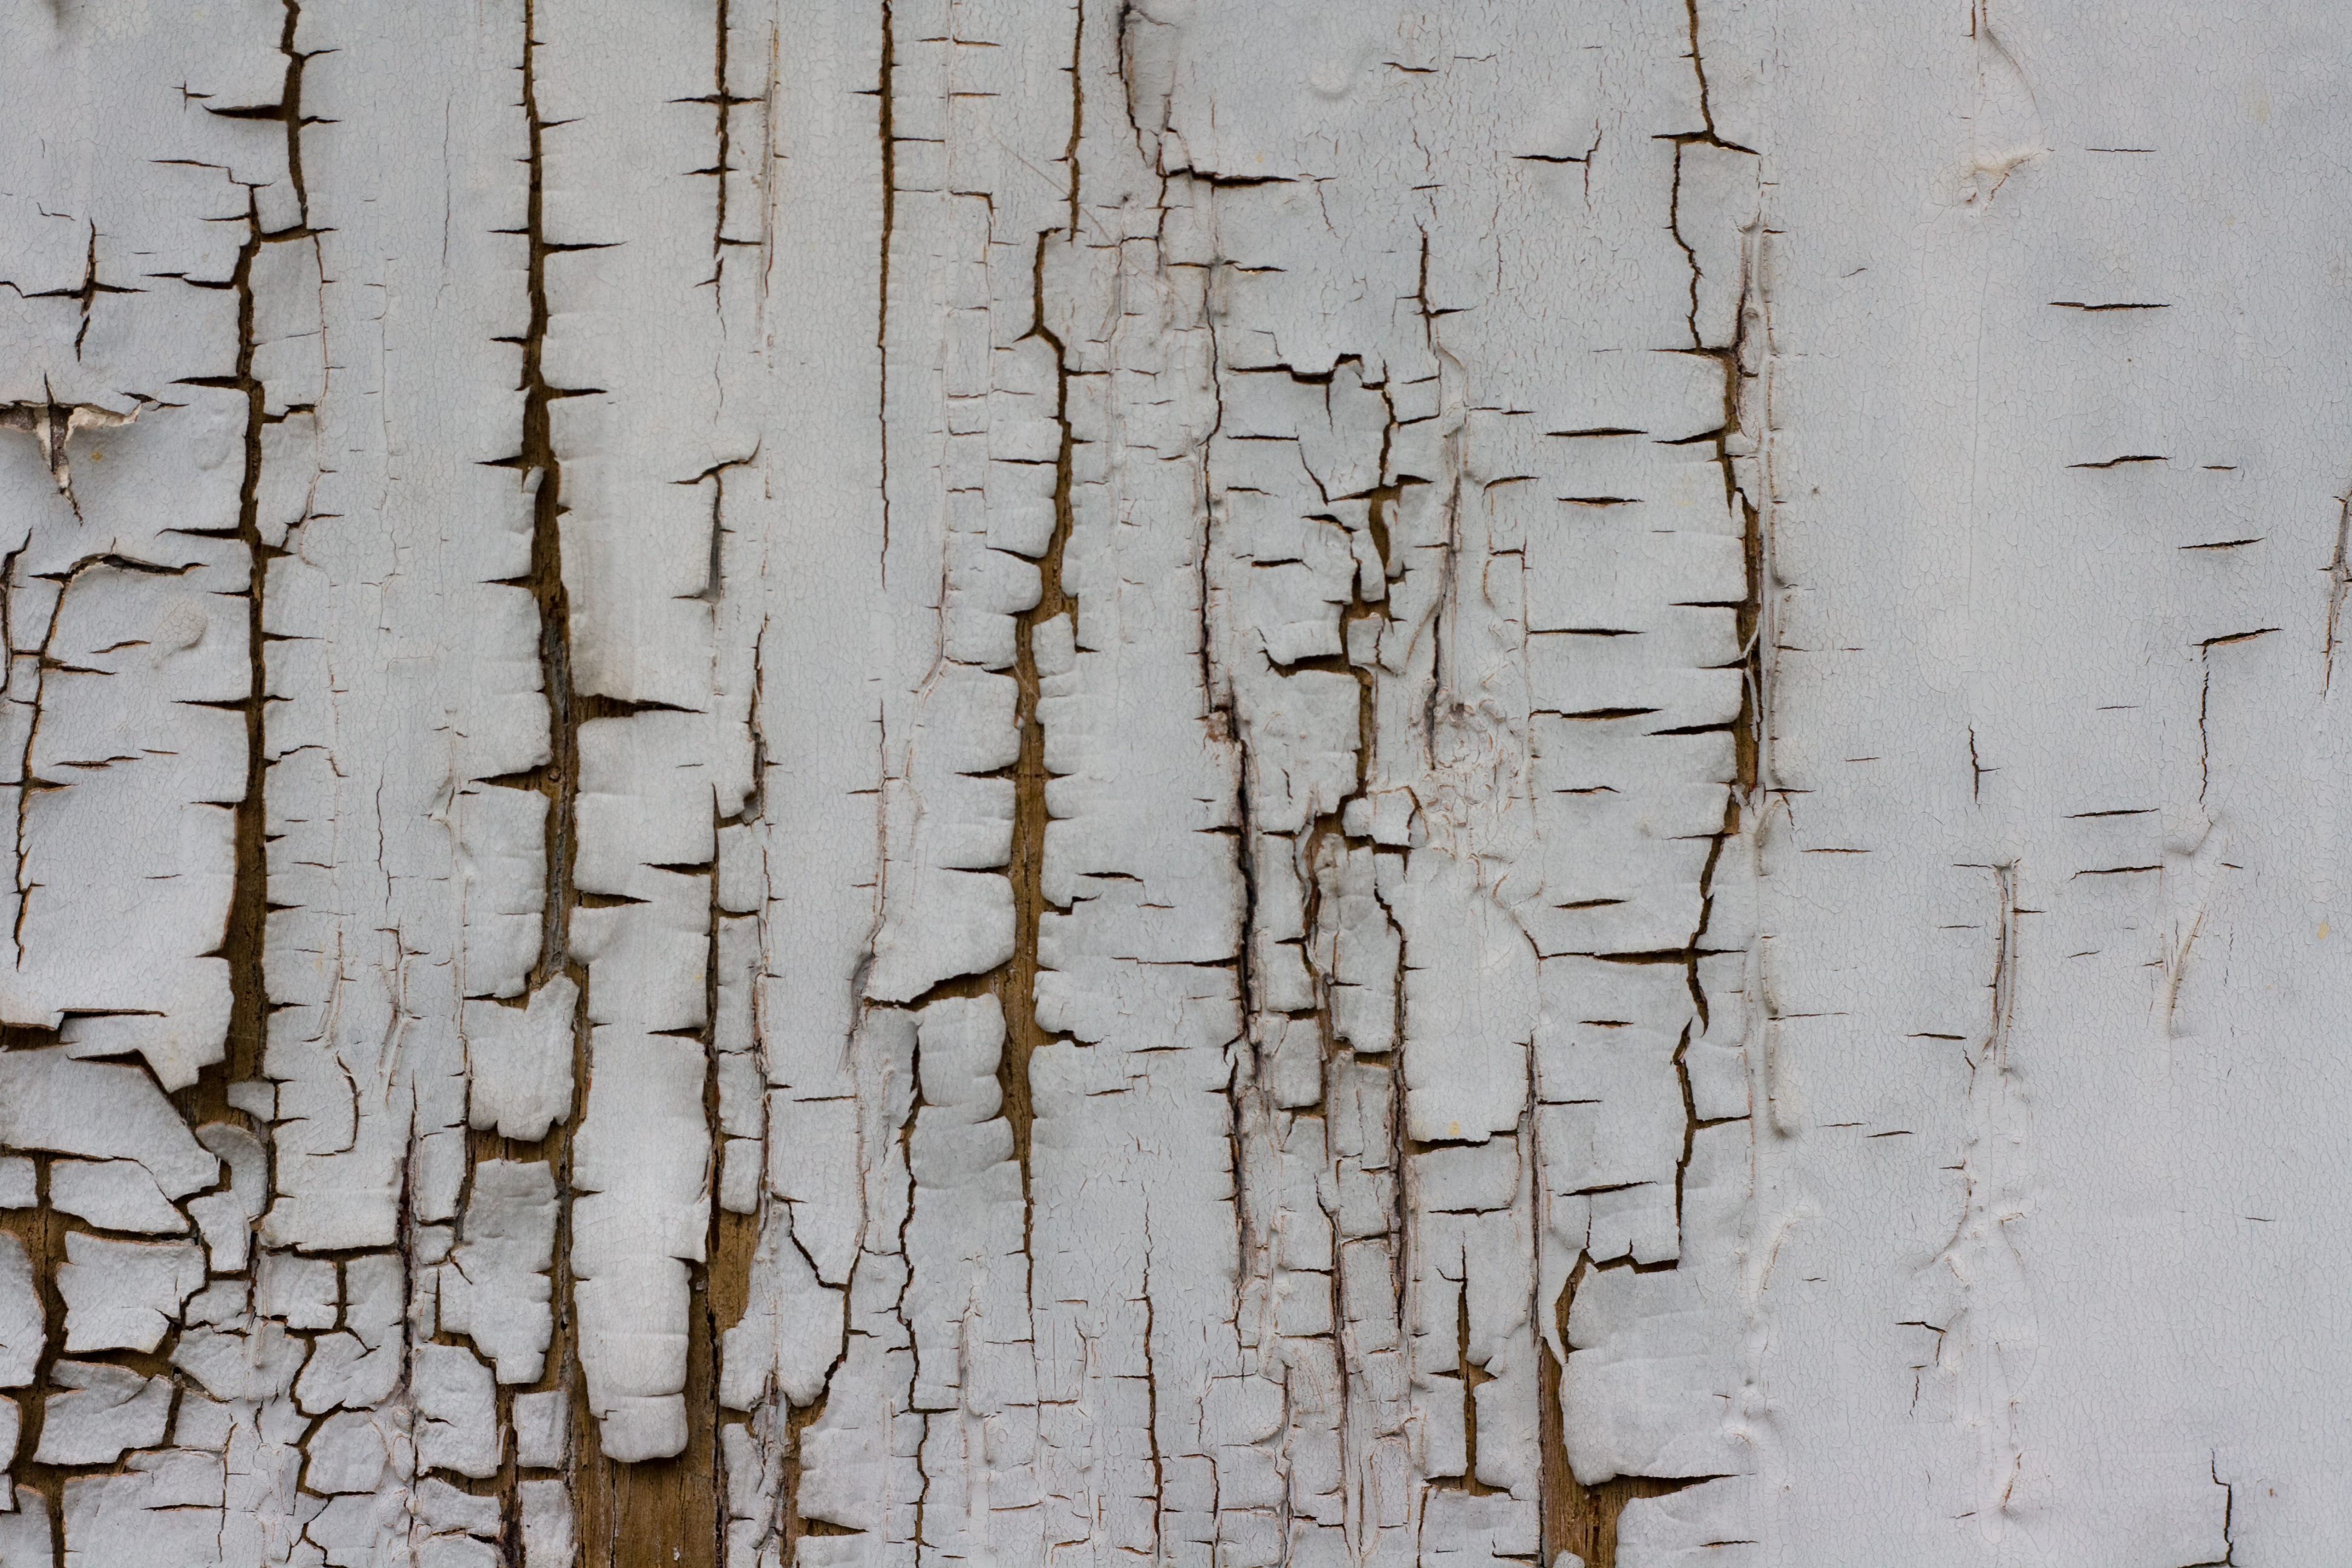 4 hi-res grunge textures of cracked paint | High Resolution Textures